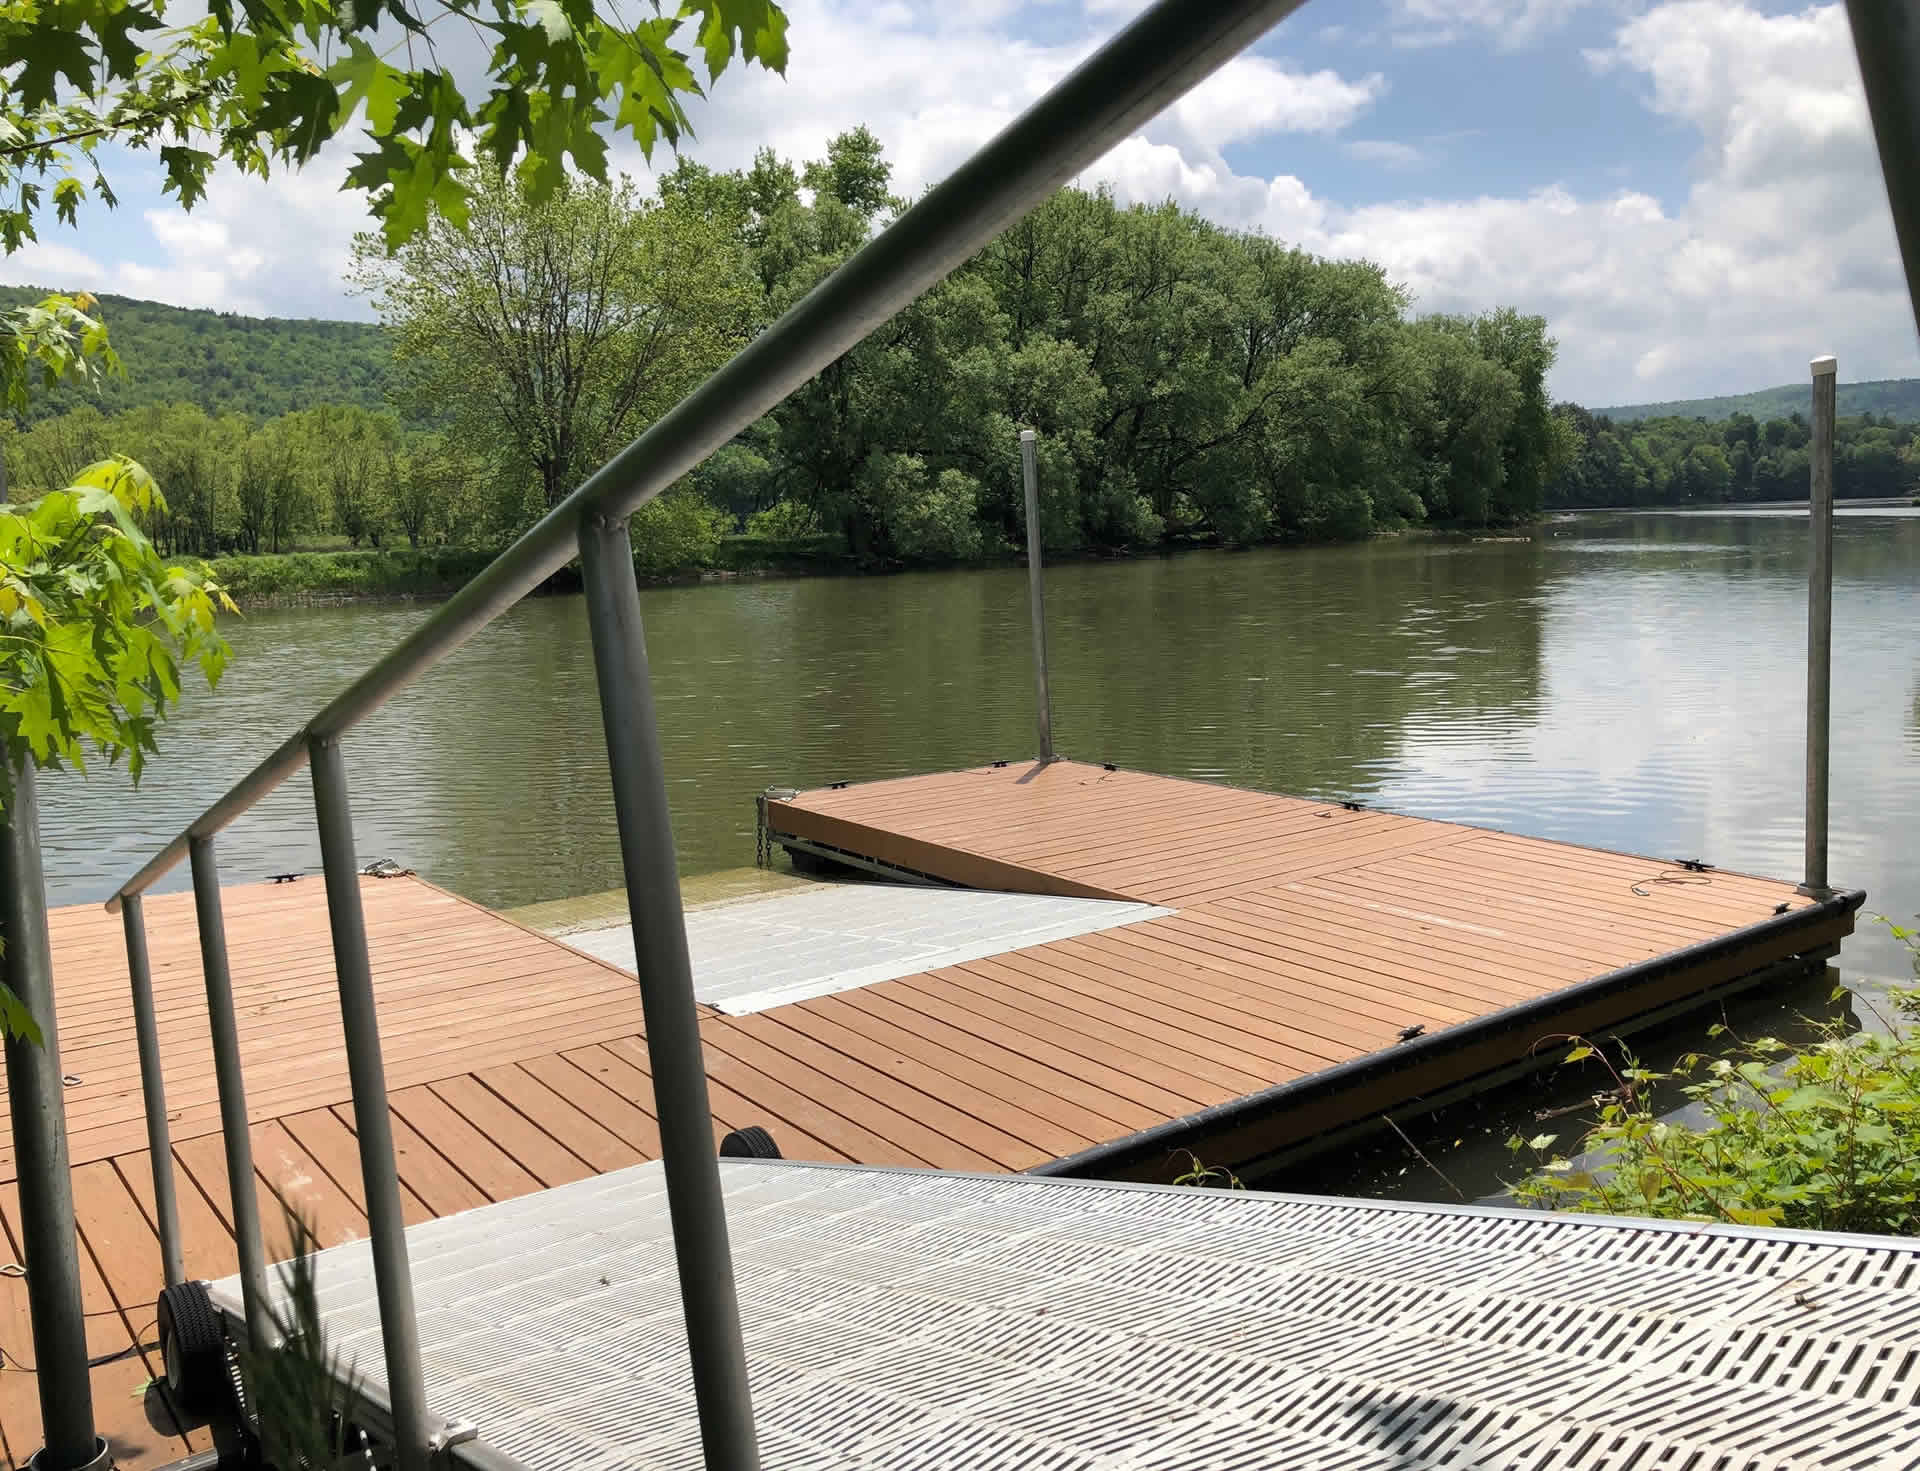 Launch With Ease   Custom Kayak Launch Ramp   Portlandville Location   Rental Rates & Info